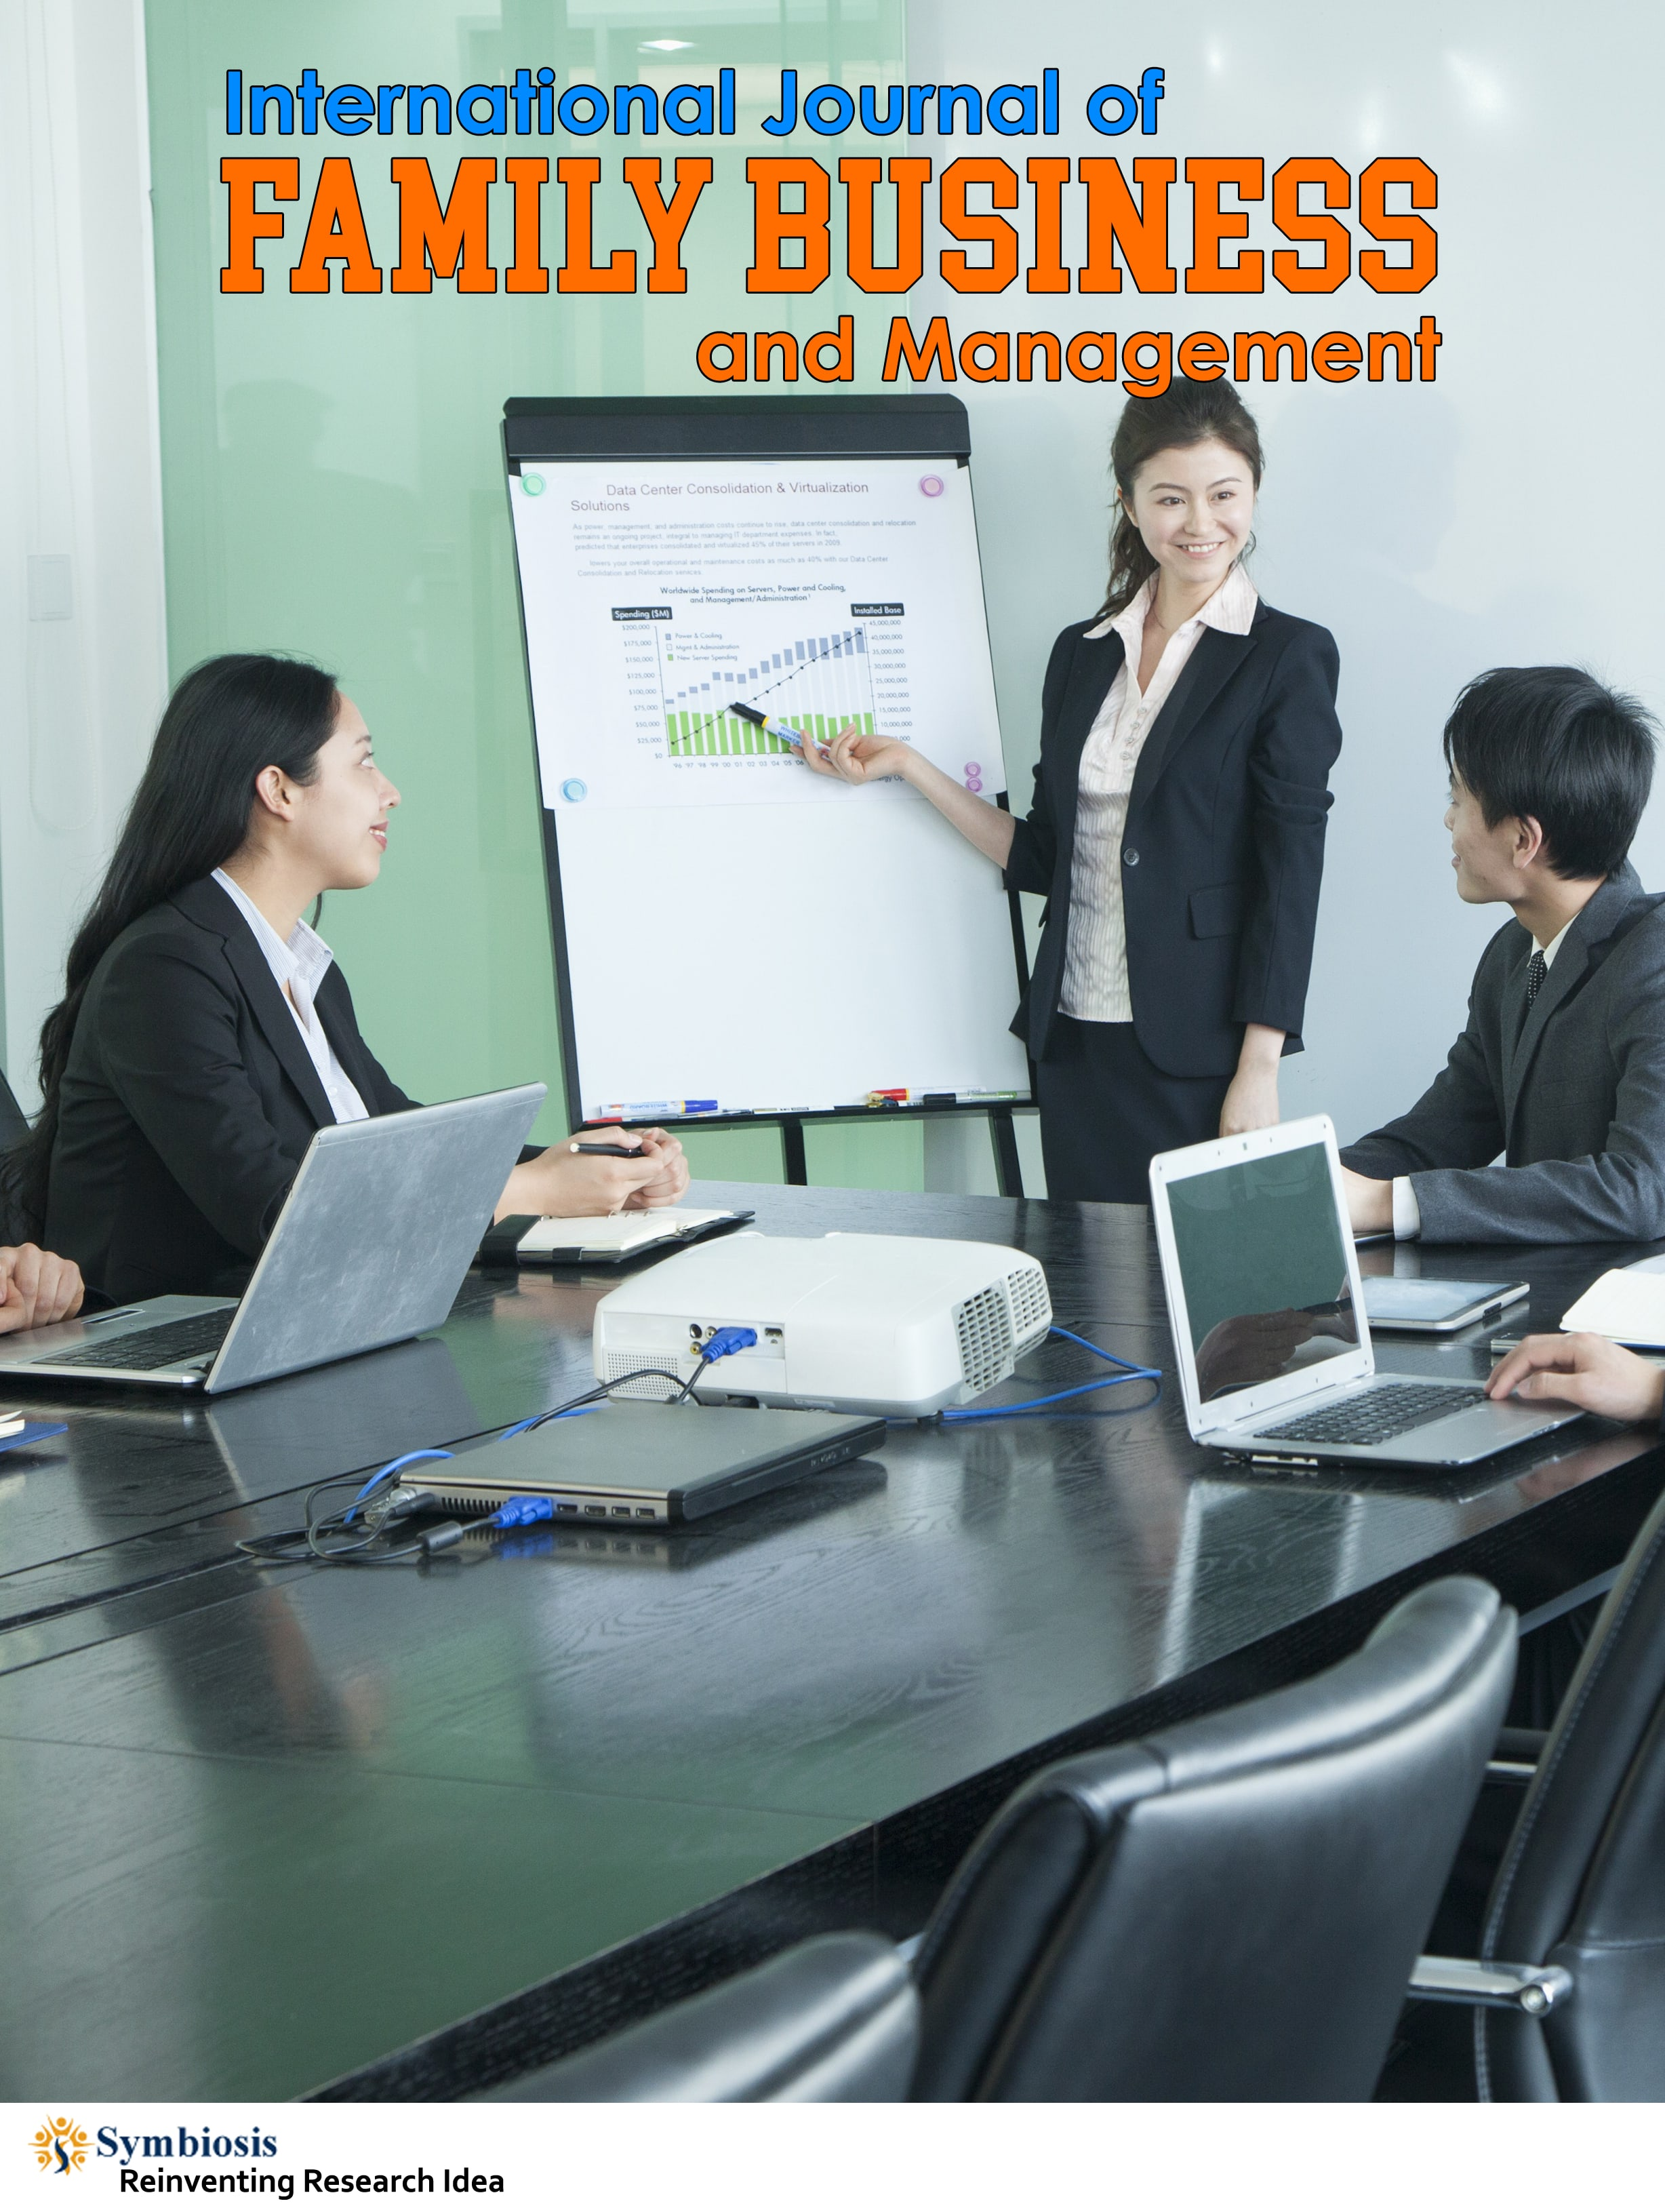 International Journal of Family Business and Management